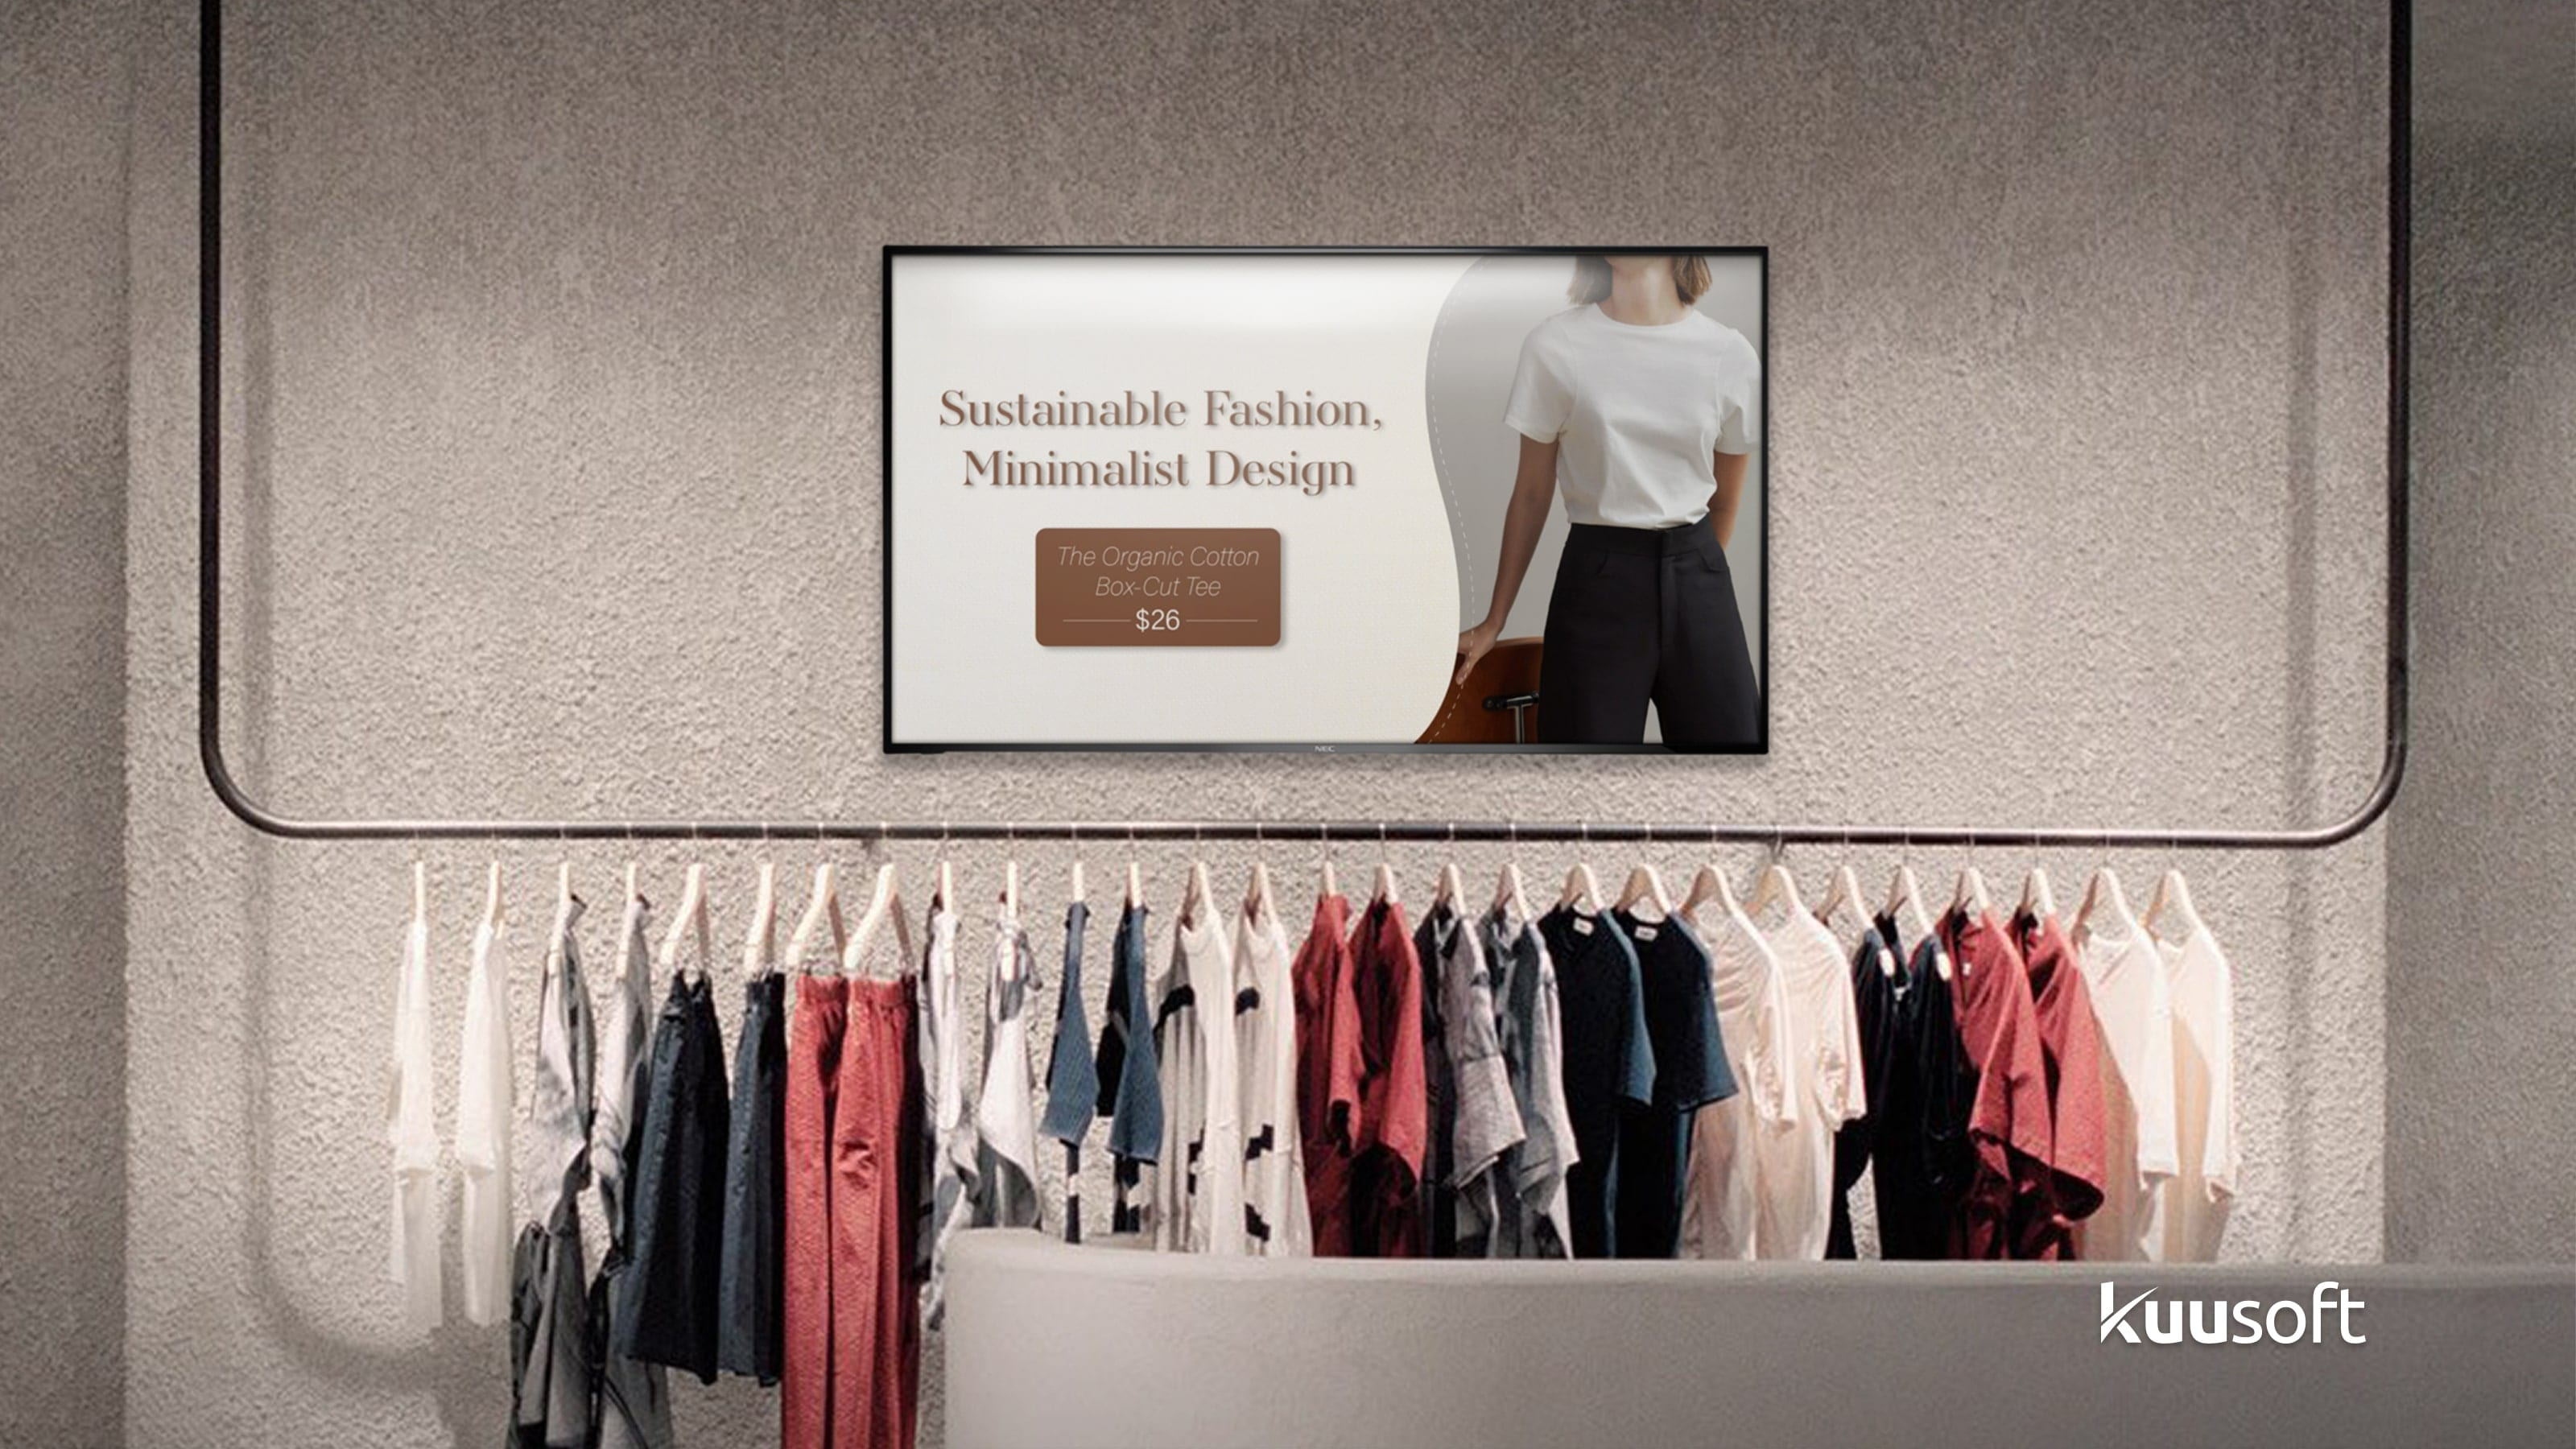 Retail digital signage for Sustainable Fashion, Minimalist Design The Organic Cotton Box-Cut Tee $26